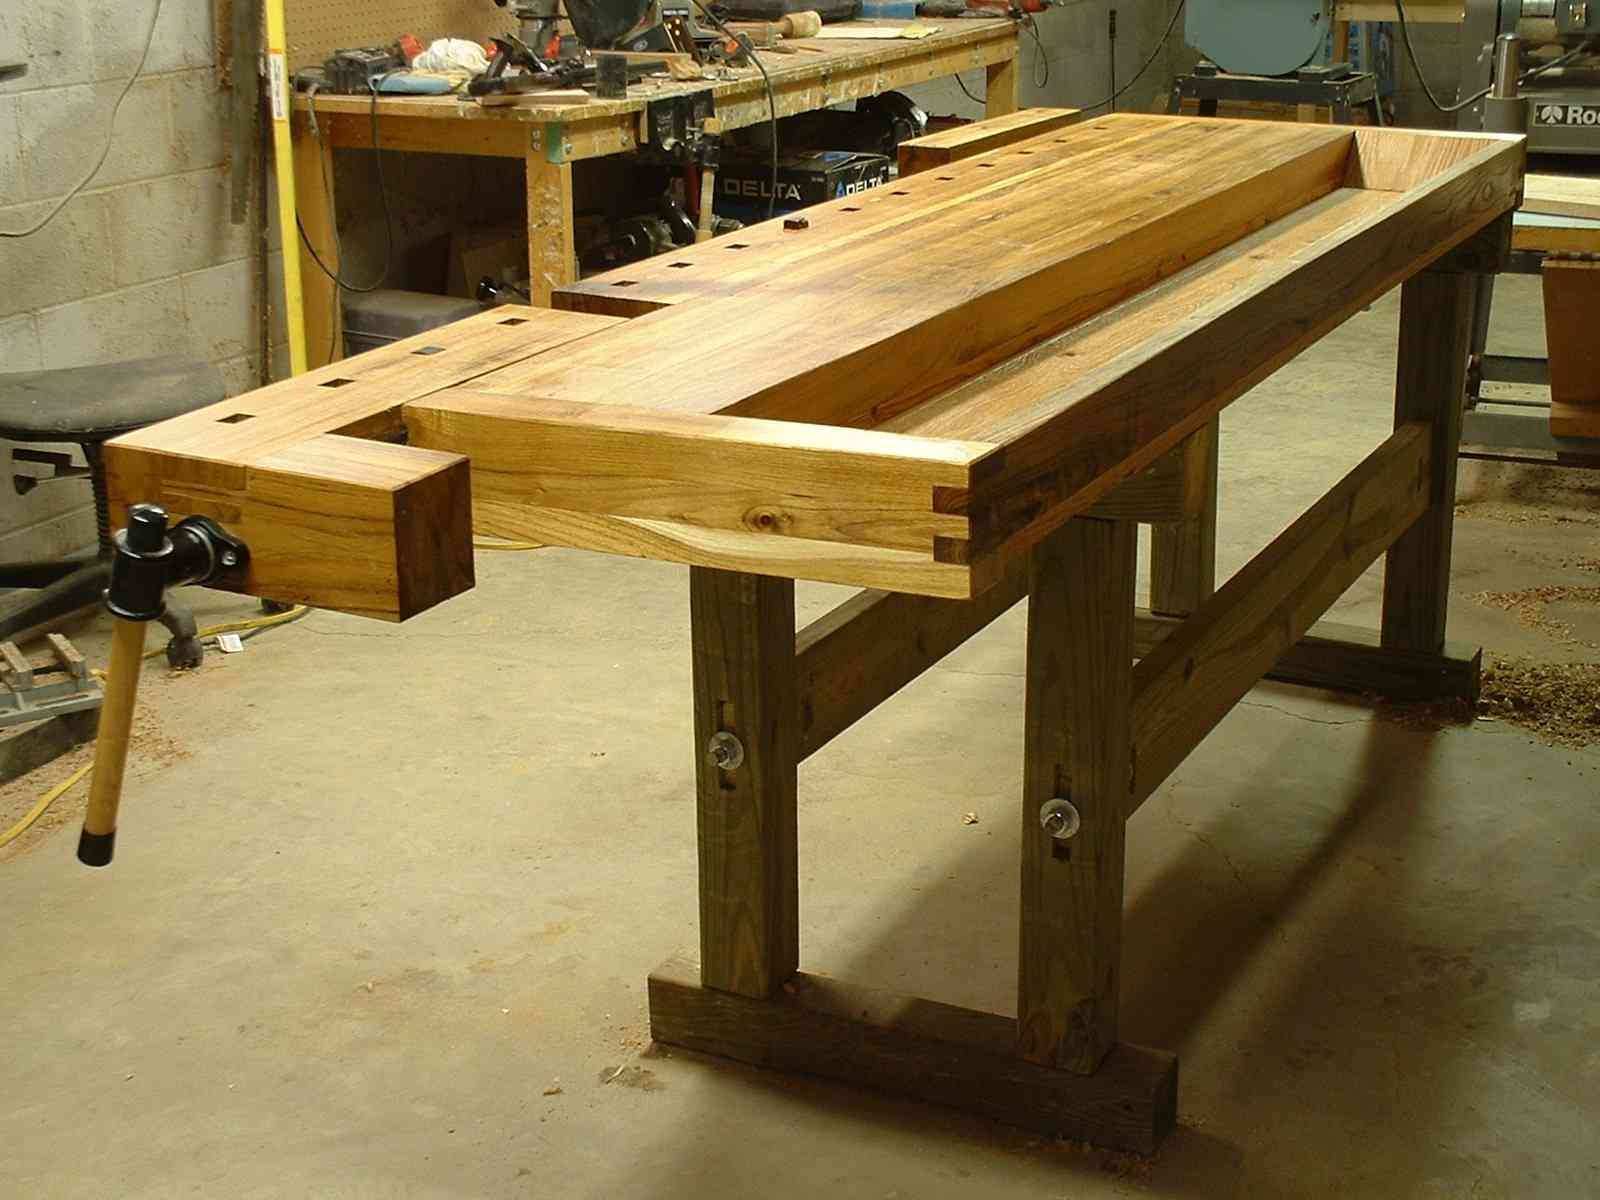 European Cabinet Makers Workbench Workbench Pinterest Woodworking And Woodworking Bench Plans